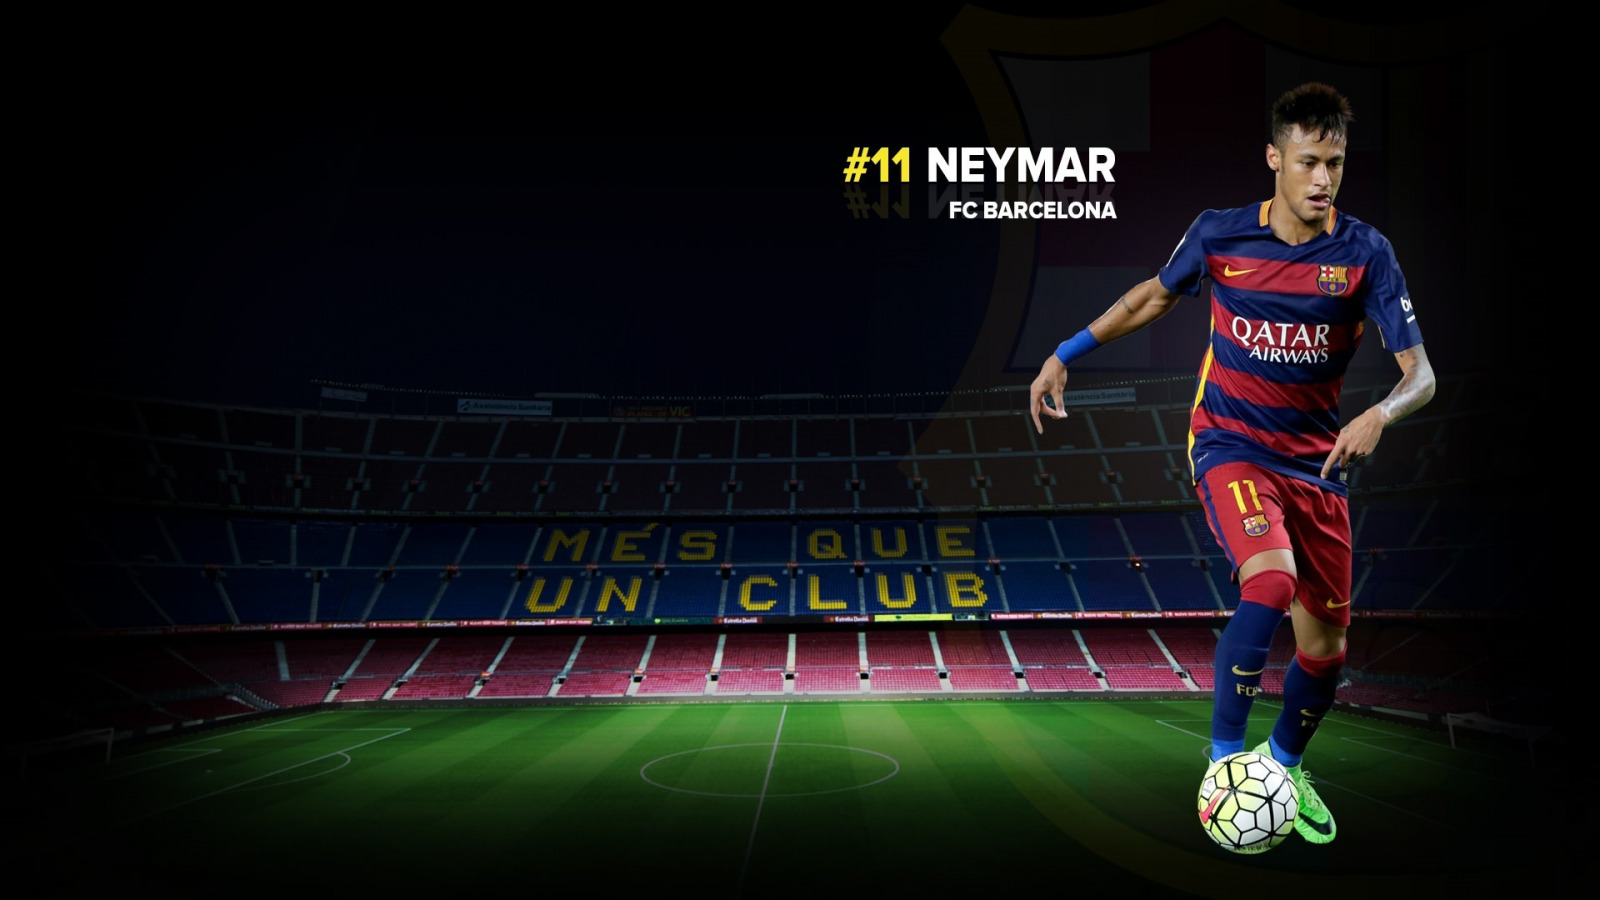 Fc barcelona photo gallery ASOS Online Shopping for the Latest Clothes Fashion